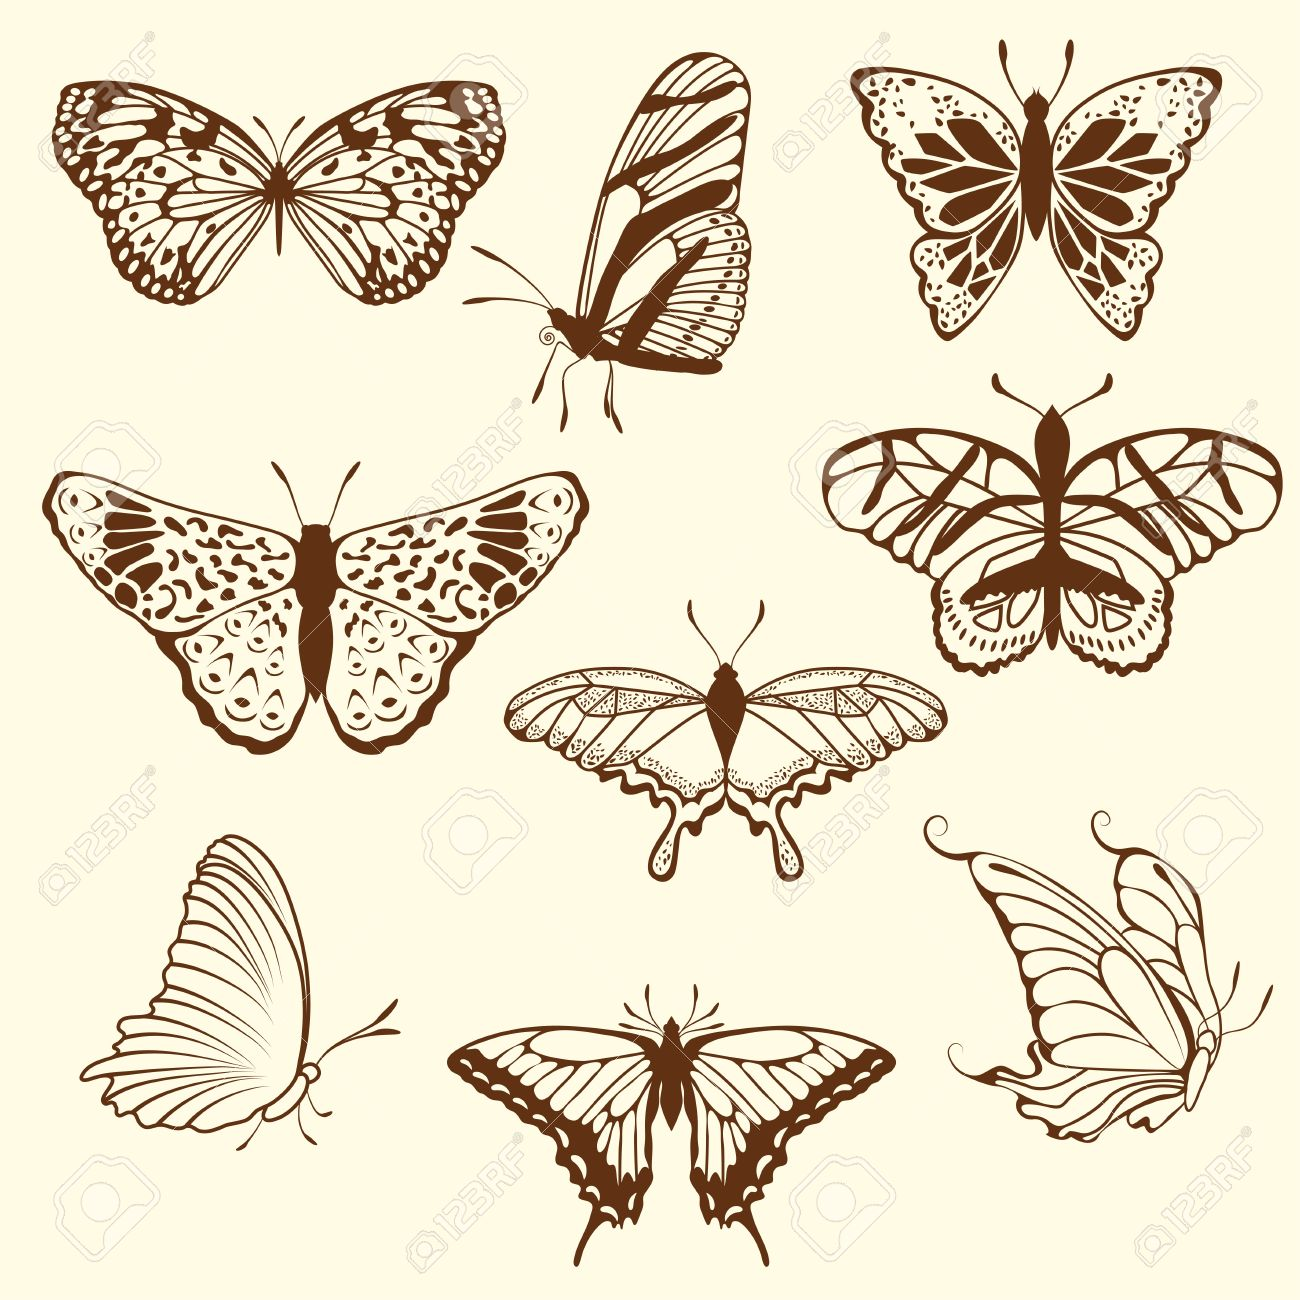 Set of different sketch butterfly. illustration for design use. Stock Vector - 10960218